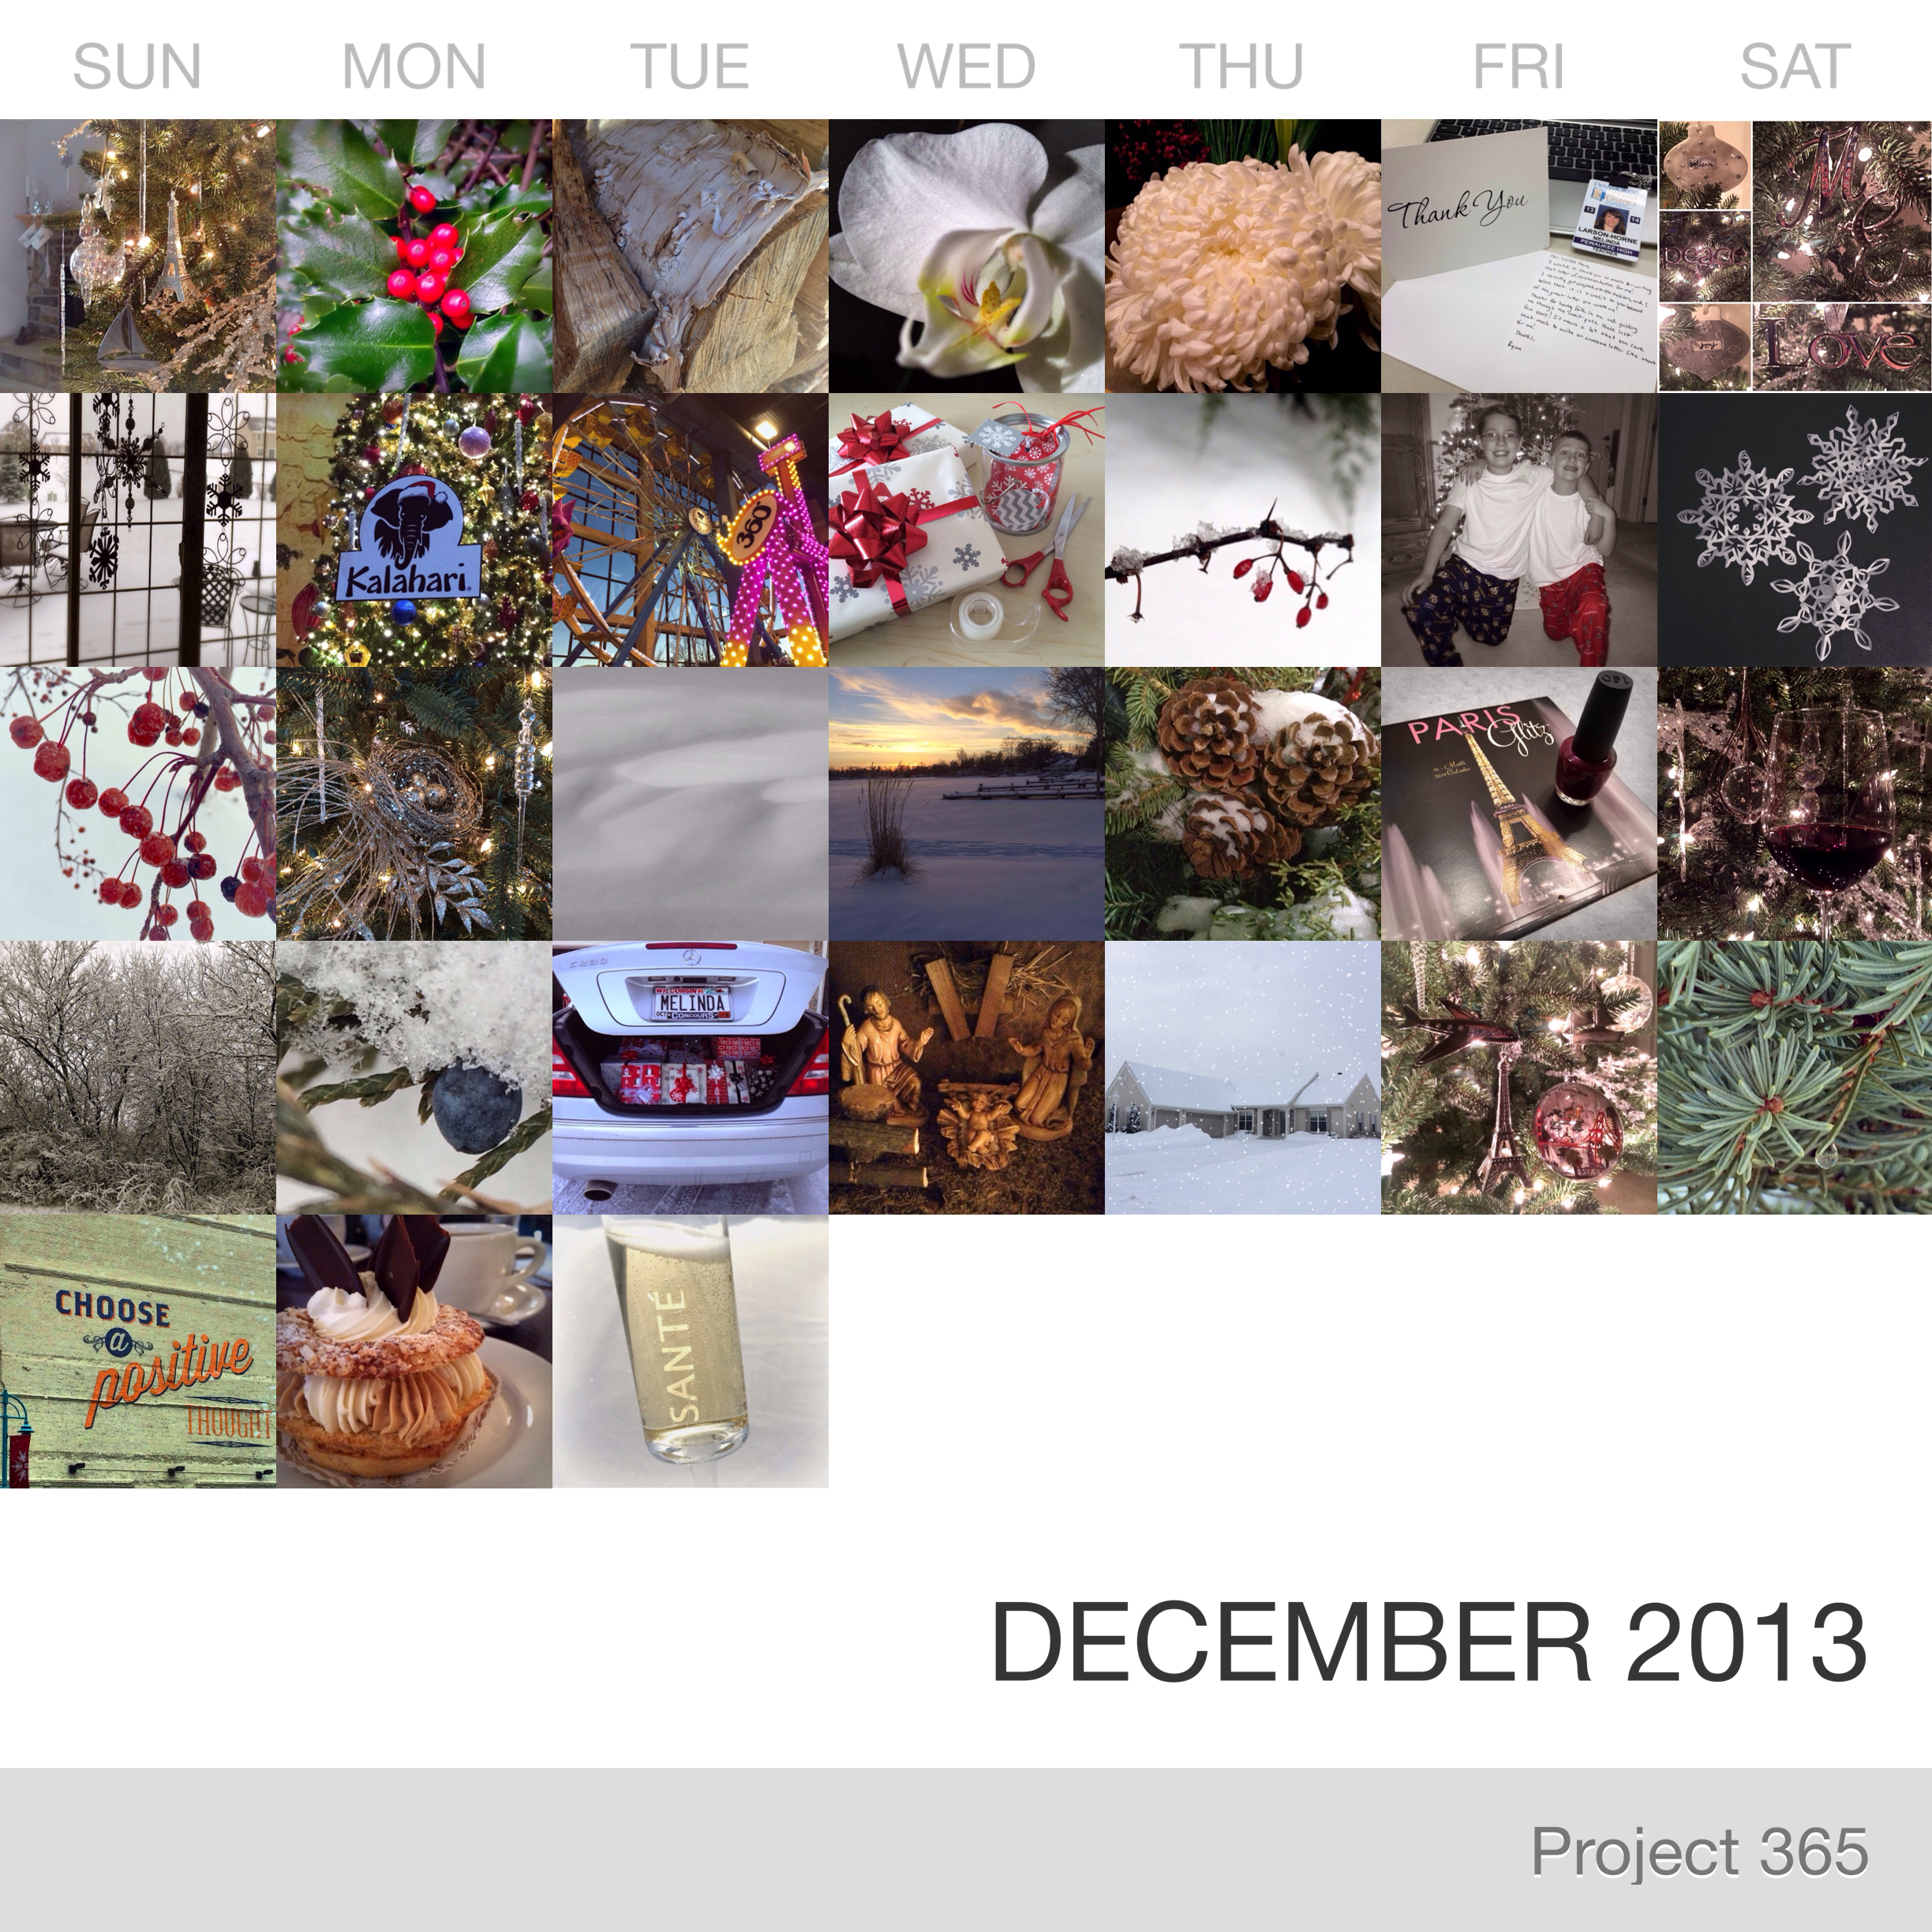 Project 365 _December-2013_Collage.jpg